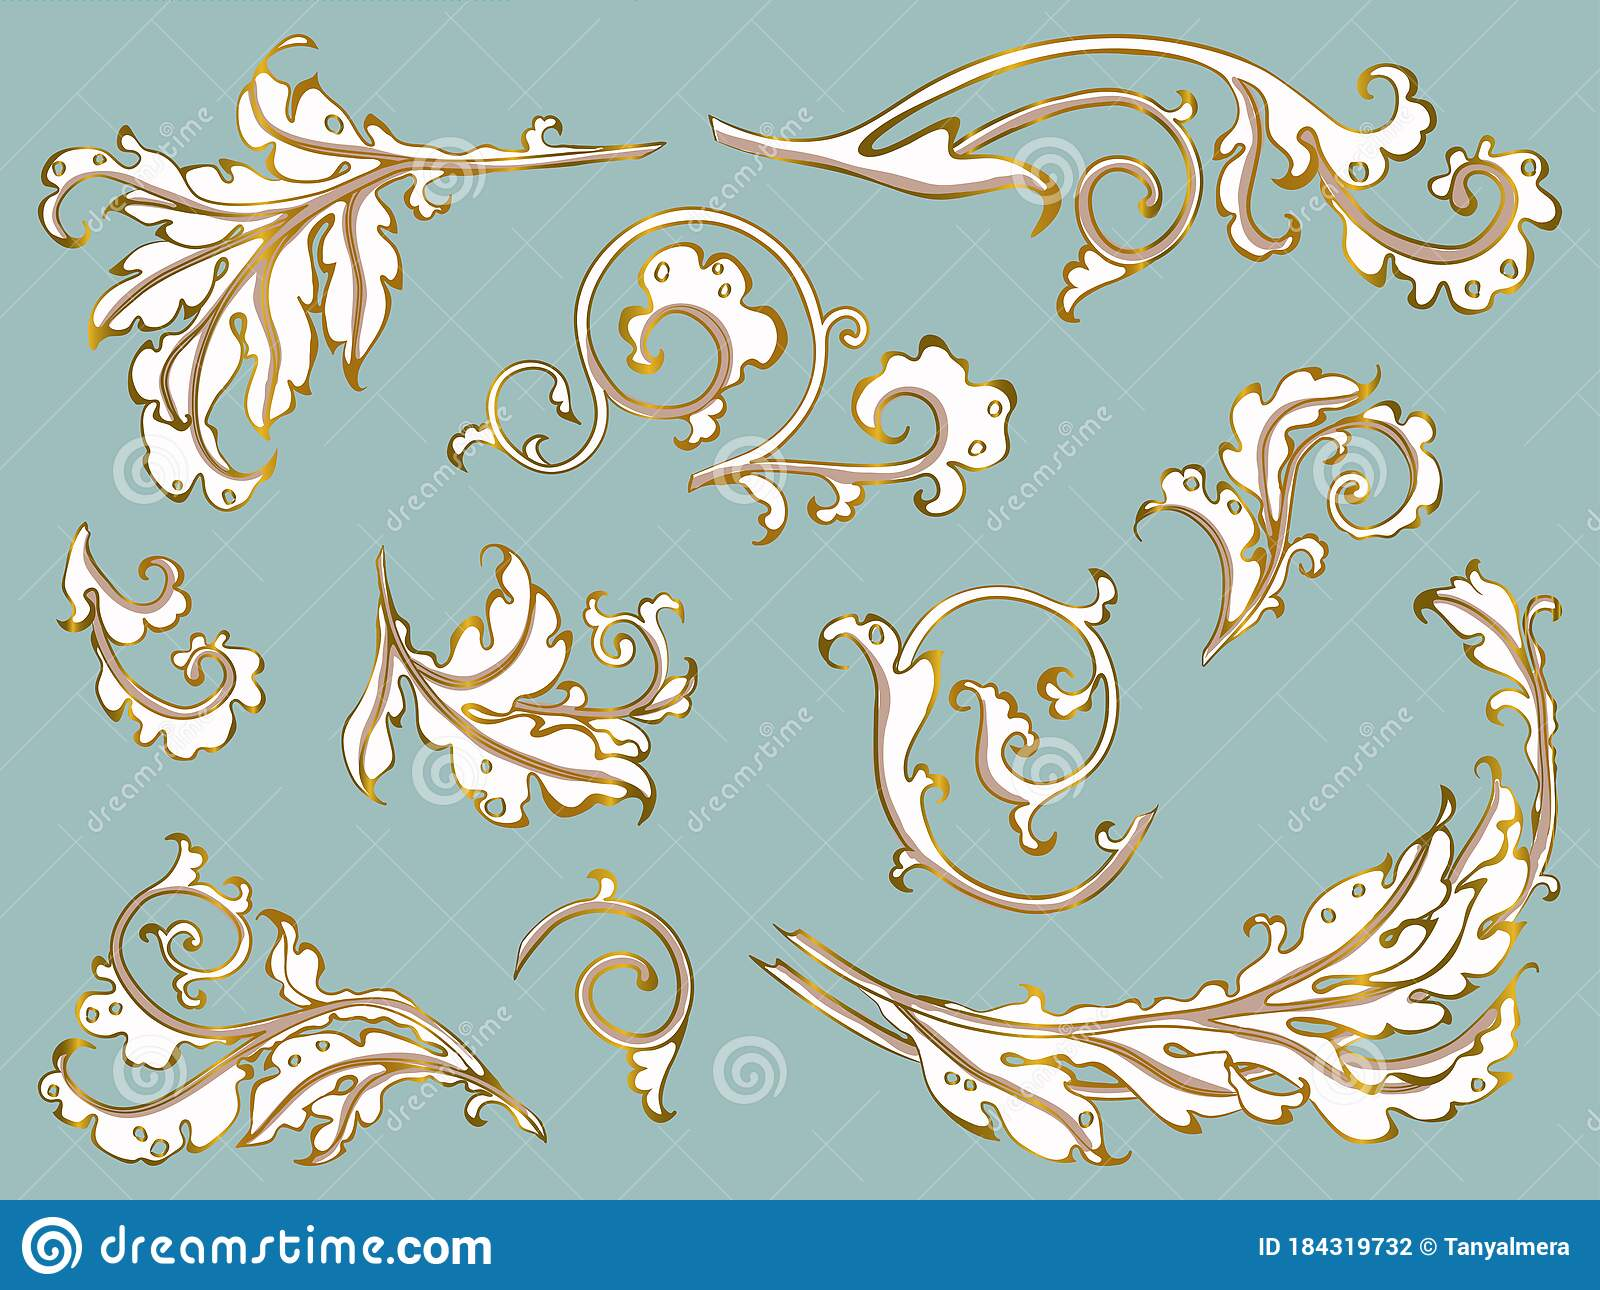 antique ornament in style baroque of acanthus leaves vector set gold on blue stock illustration illustration of frame monogram 184319732 antique ornament in style baroque of acanthus leaves vector set gold on blue stock illustration illustration of frame monogram 184319732